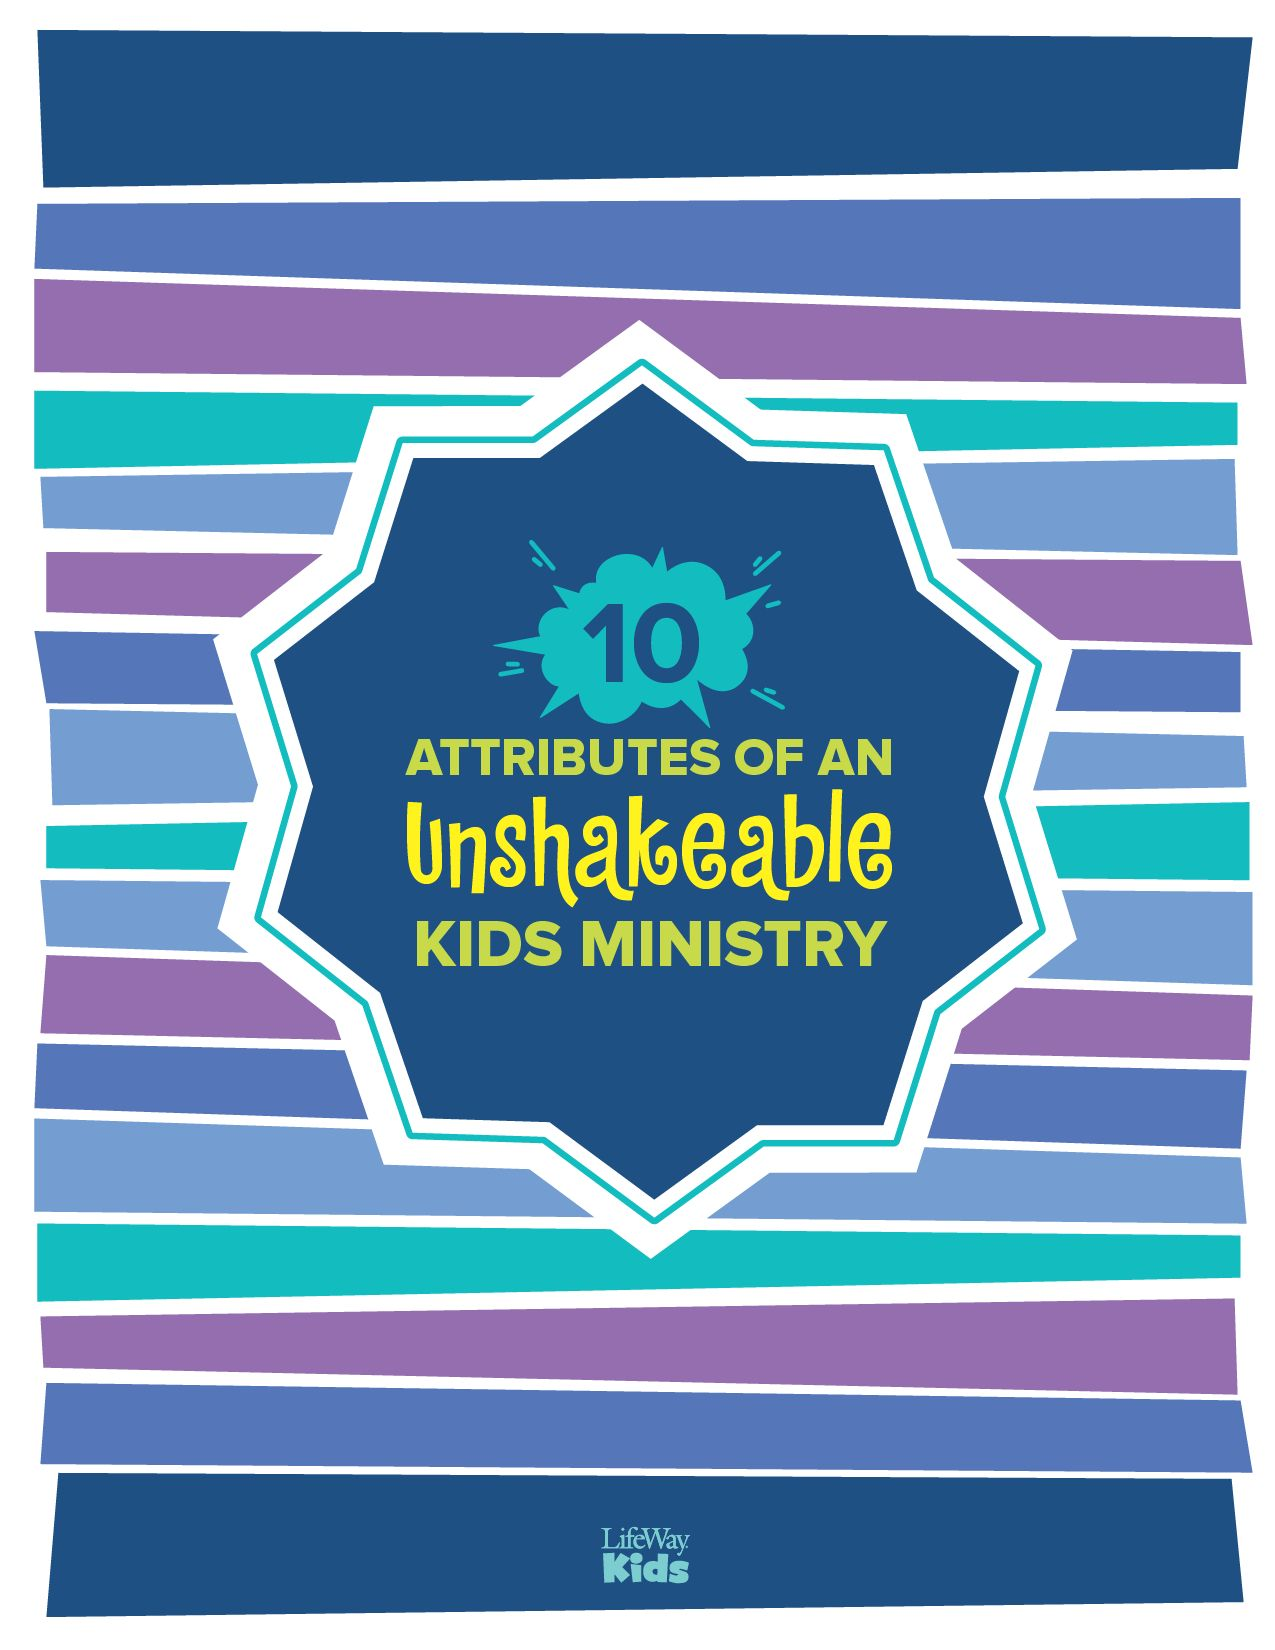 10 Attributes of an Unshakeable Kids Ministry